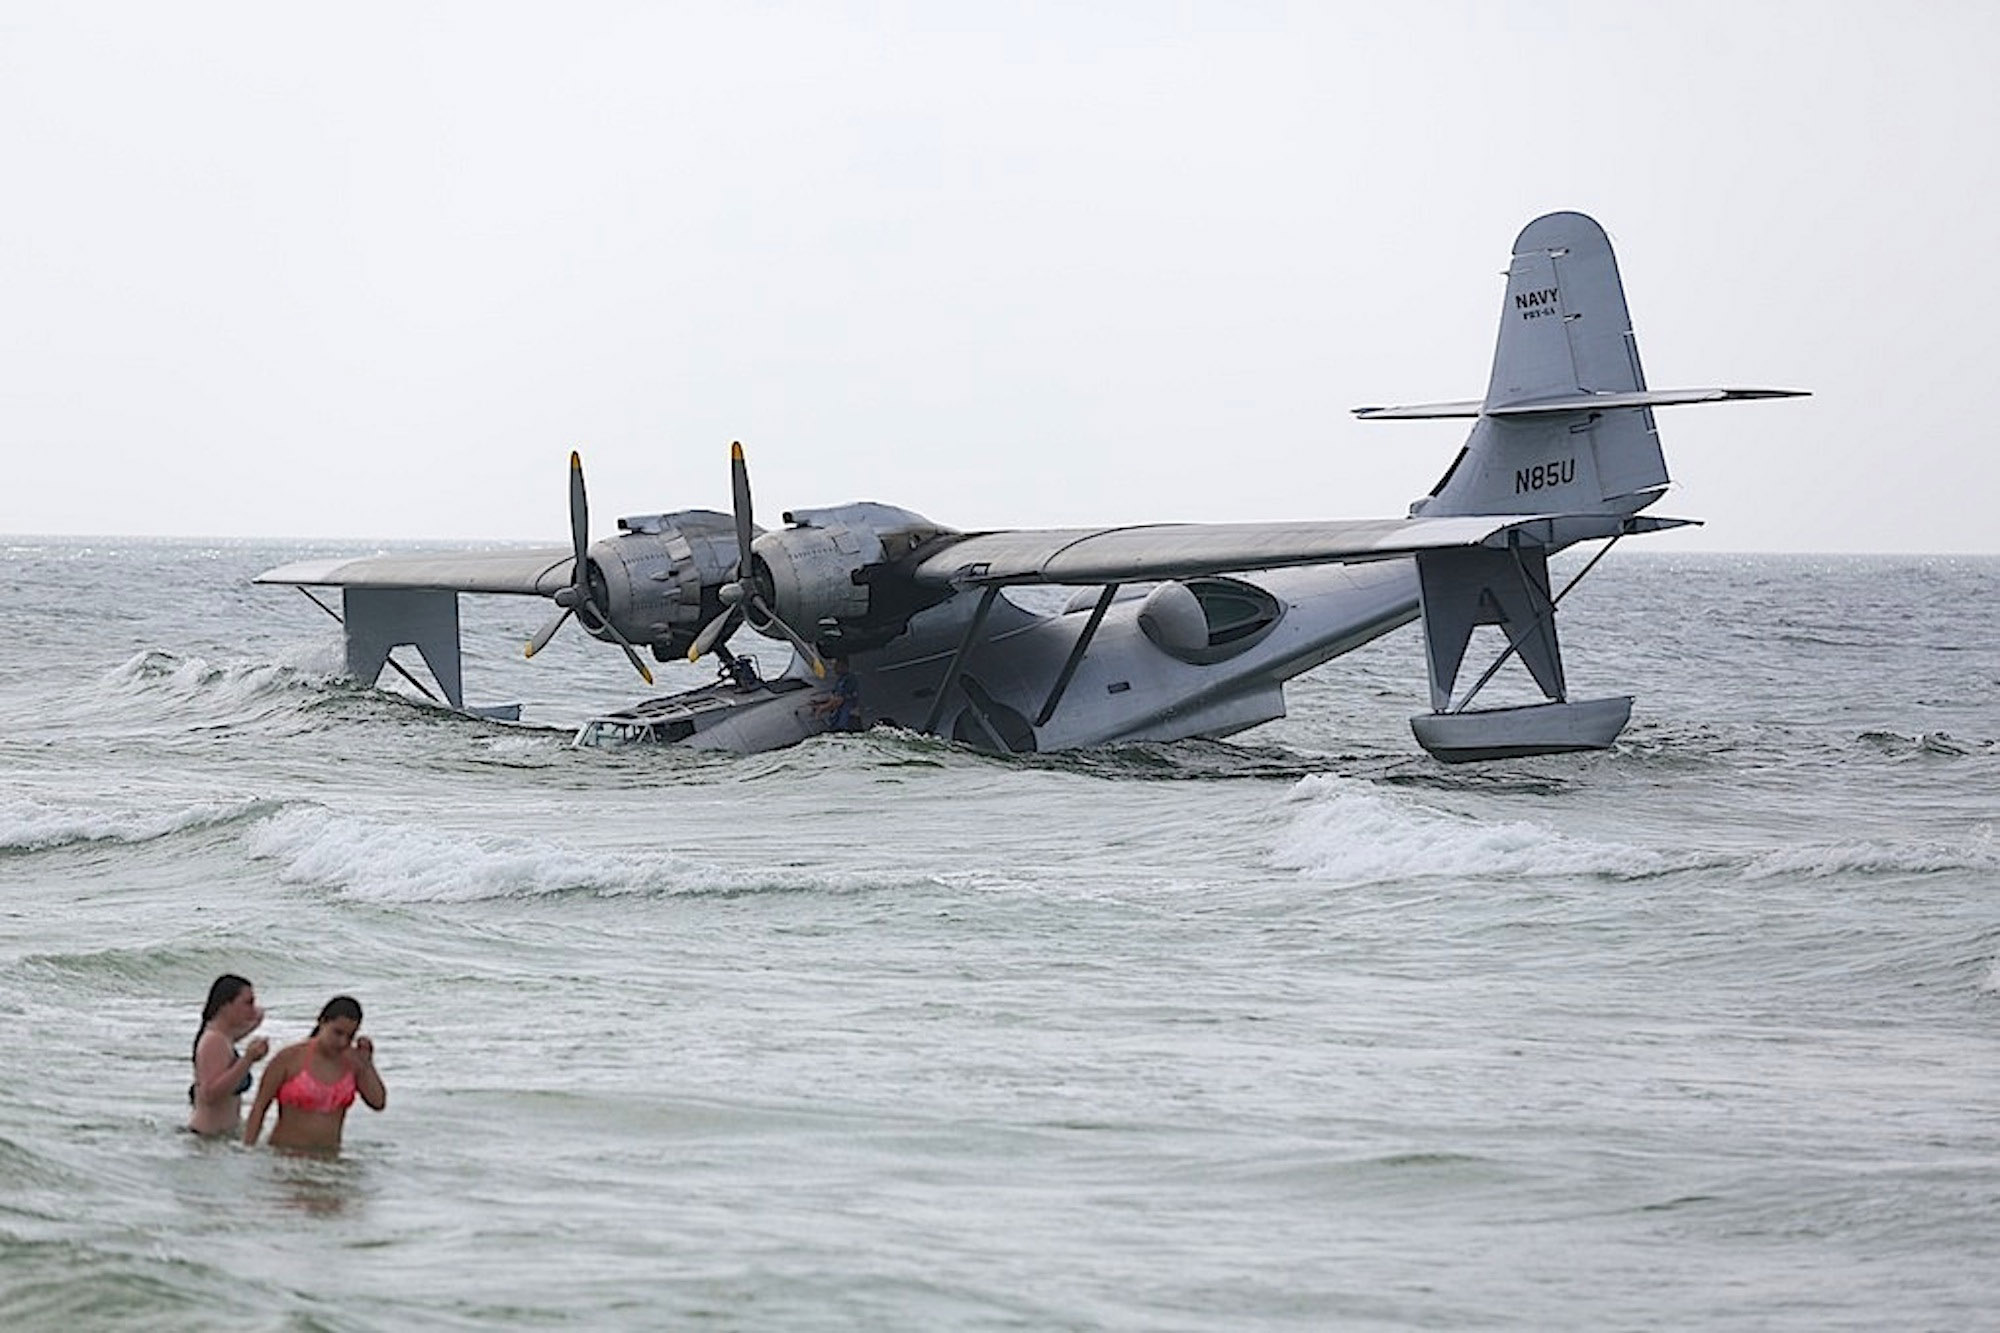 Crews filming on WWII seaplane stranded on Gulf Coast